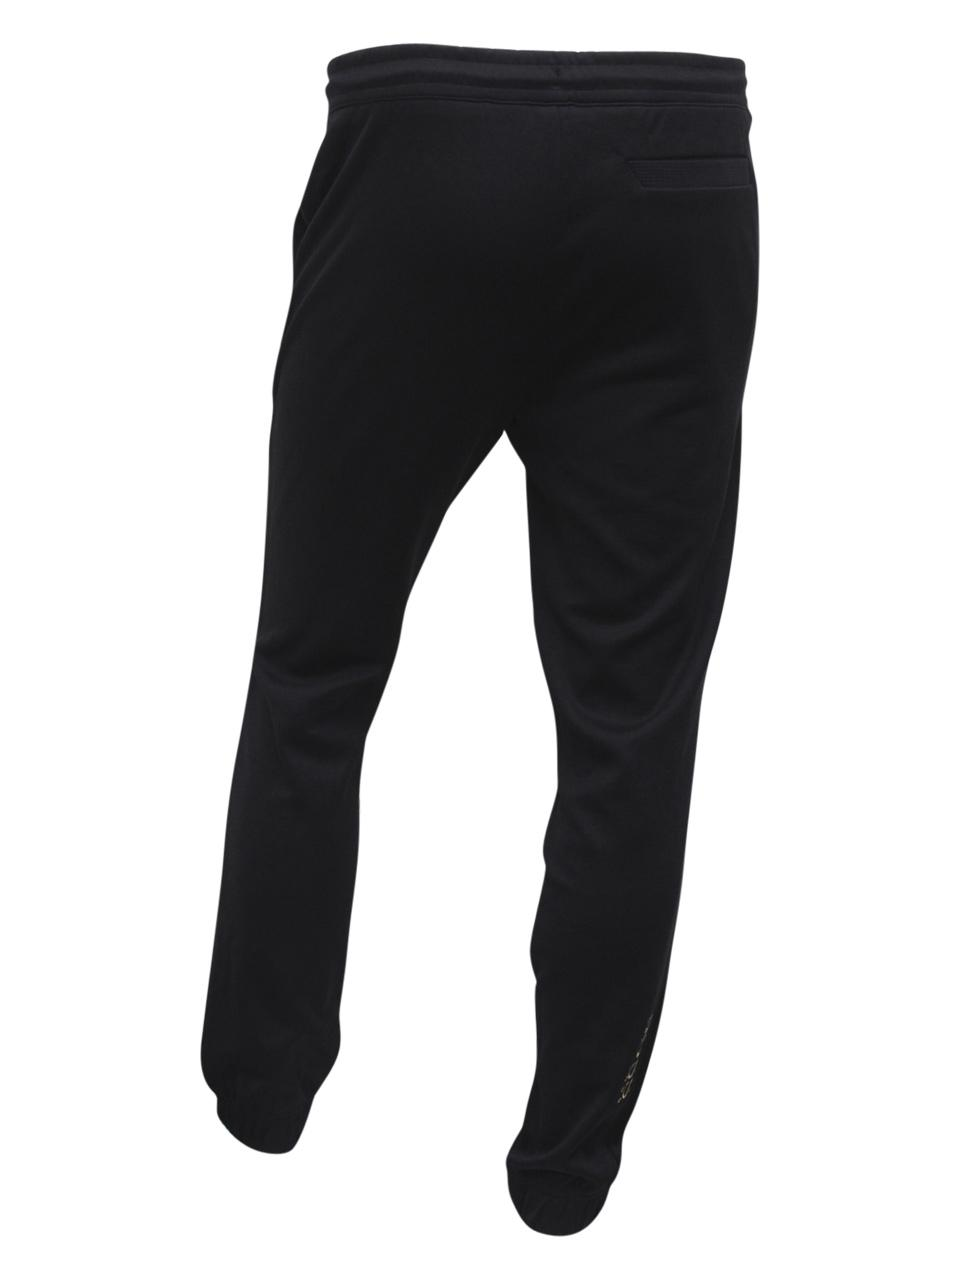 large discount super service clearance prices Details about Hugo Boss Men's Hadiko Slim Fit Jogging Pants